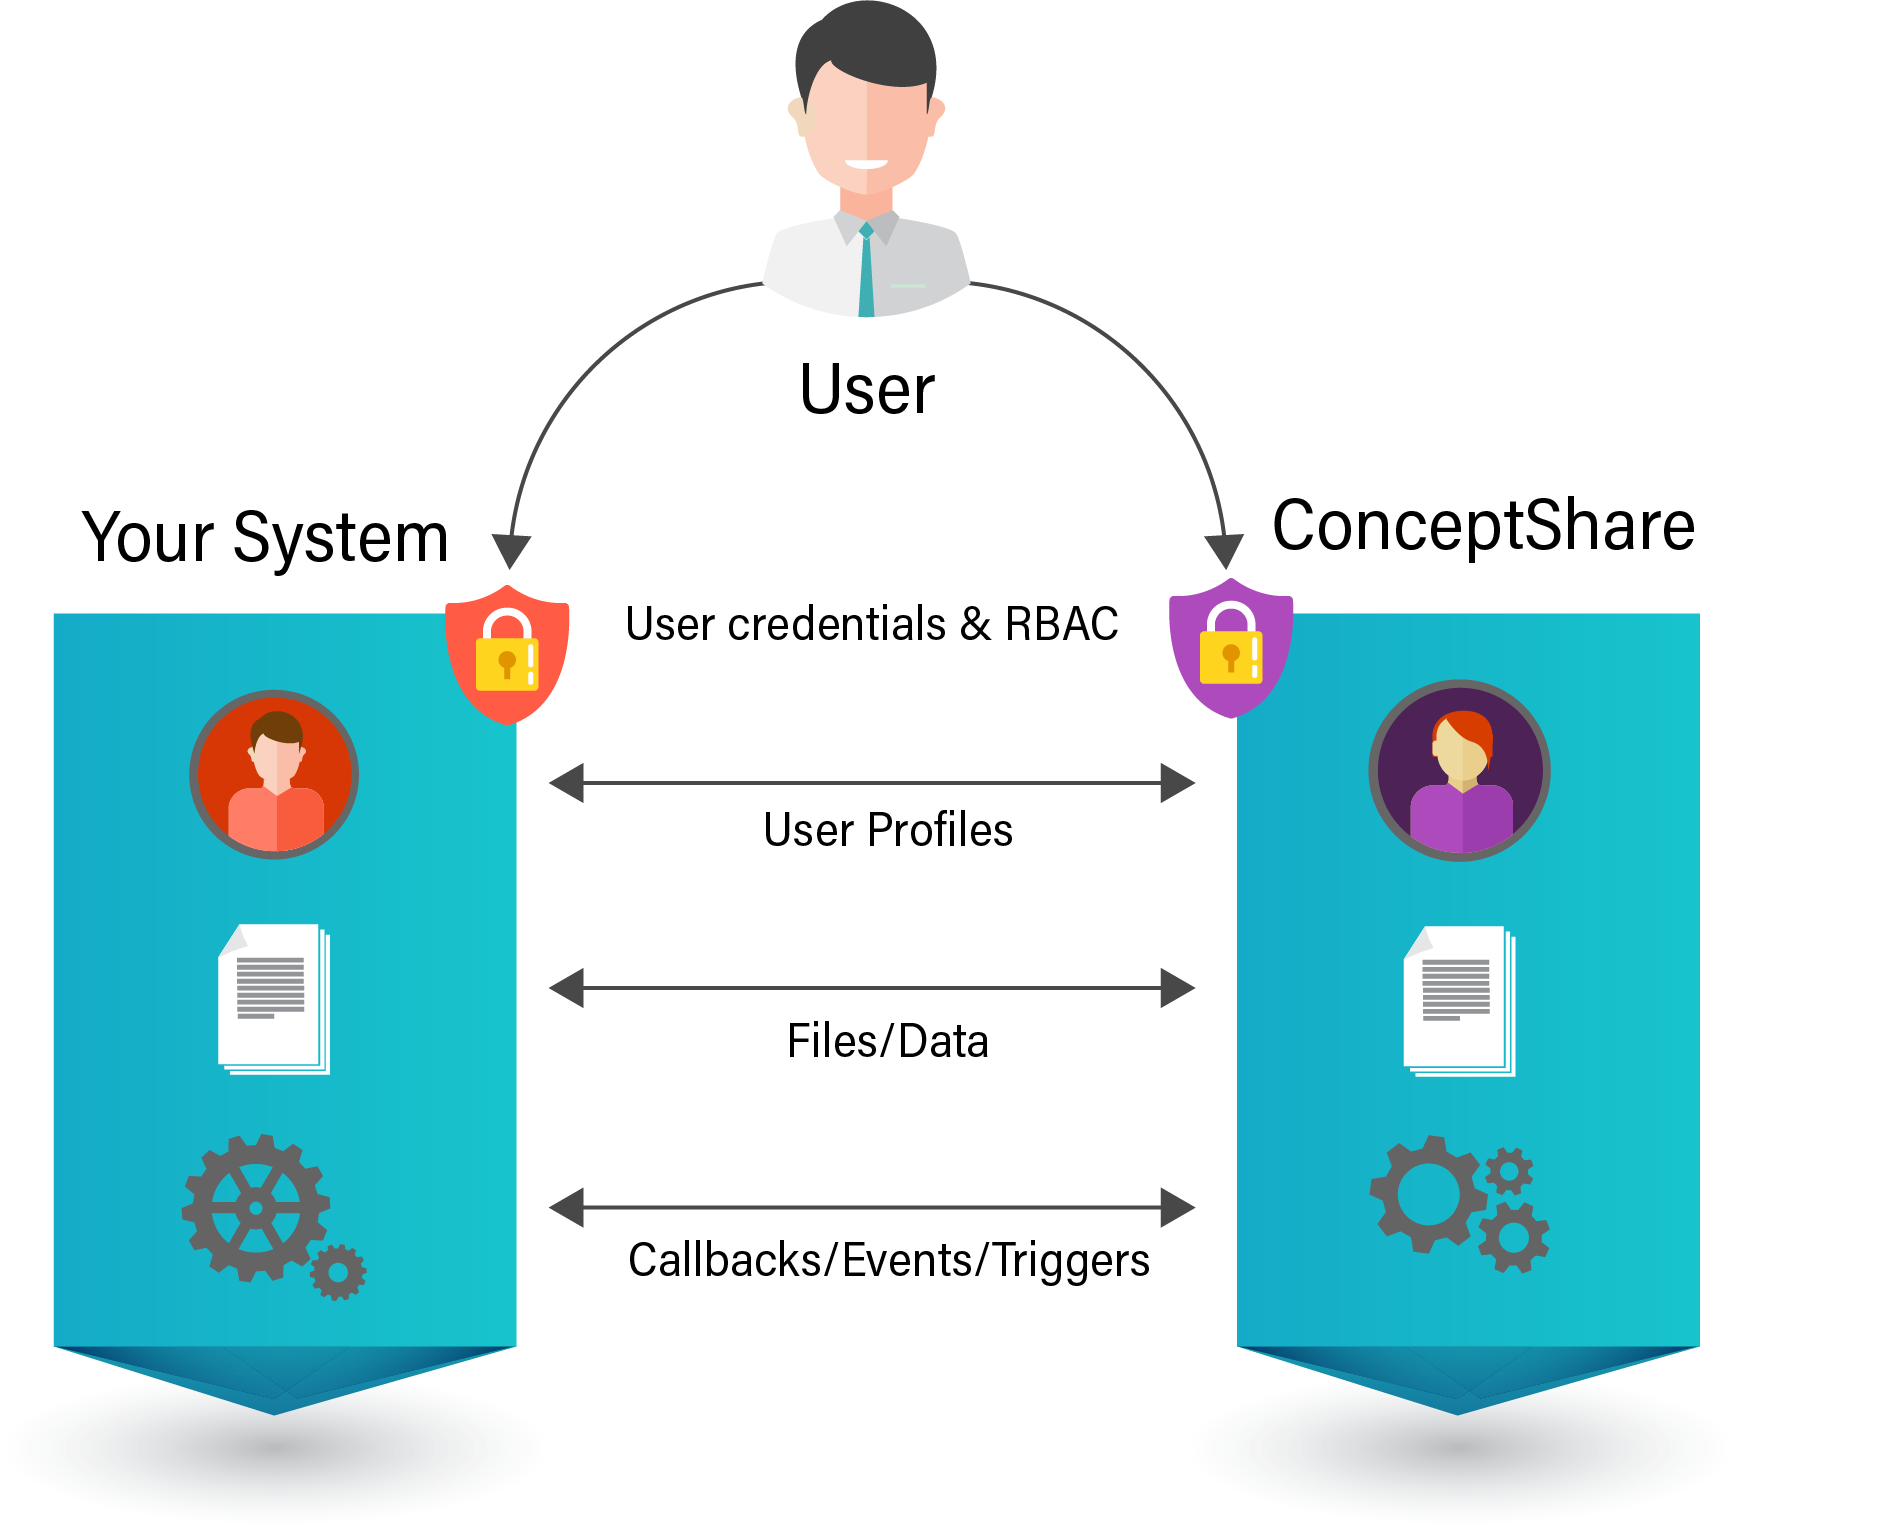 ConceptShare Side-by-Side Integration Model